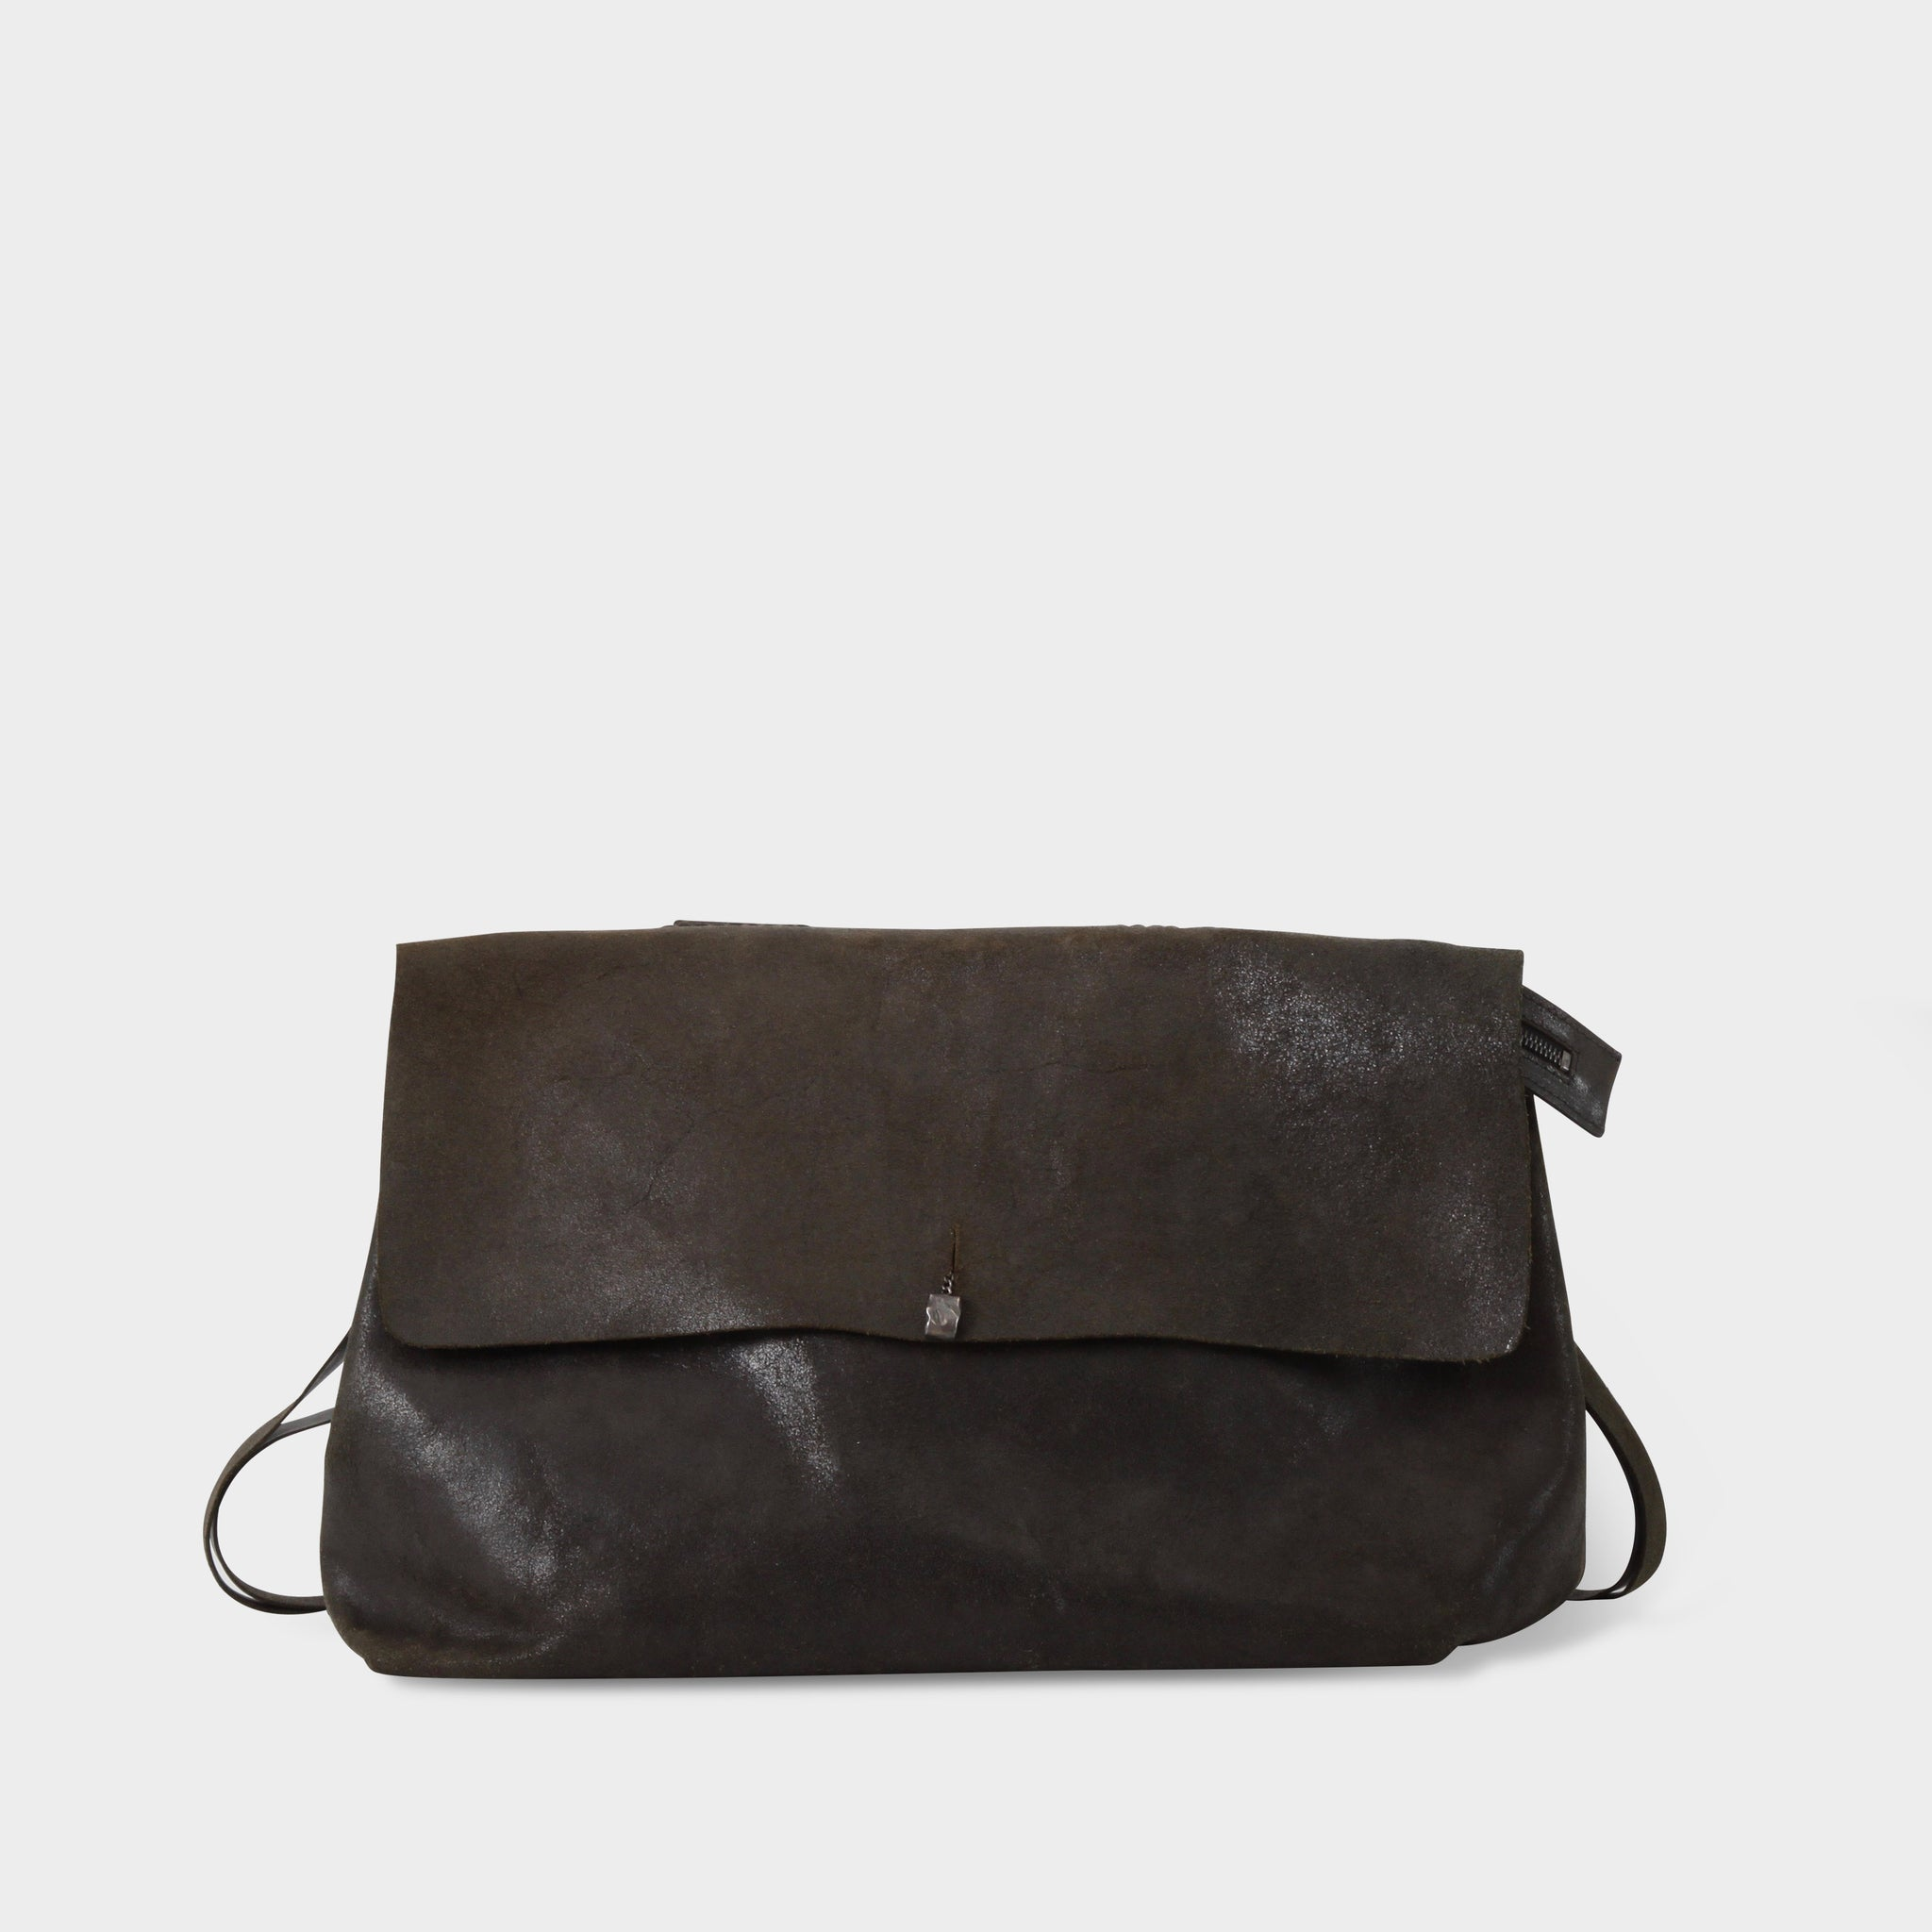 Daniele Basta Bison Leather Bag